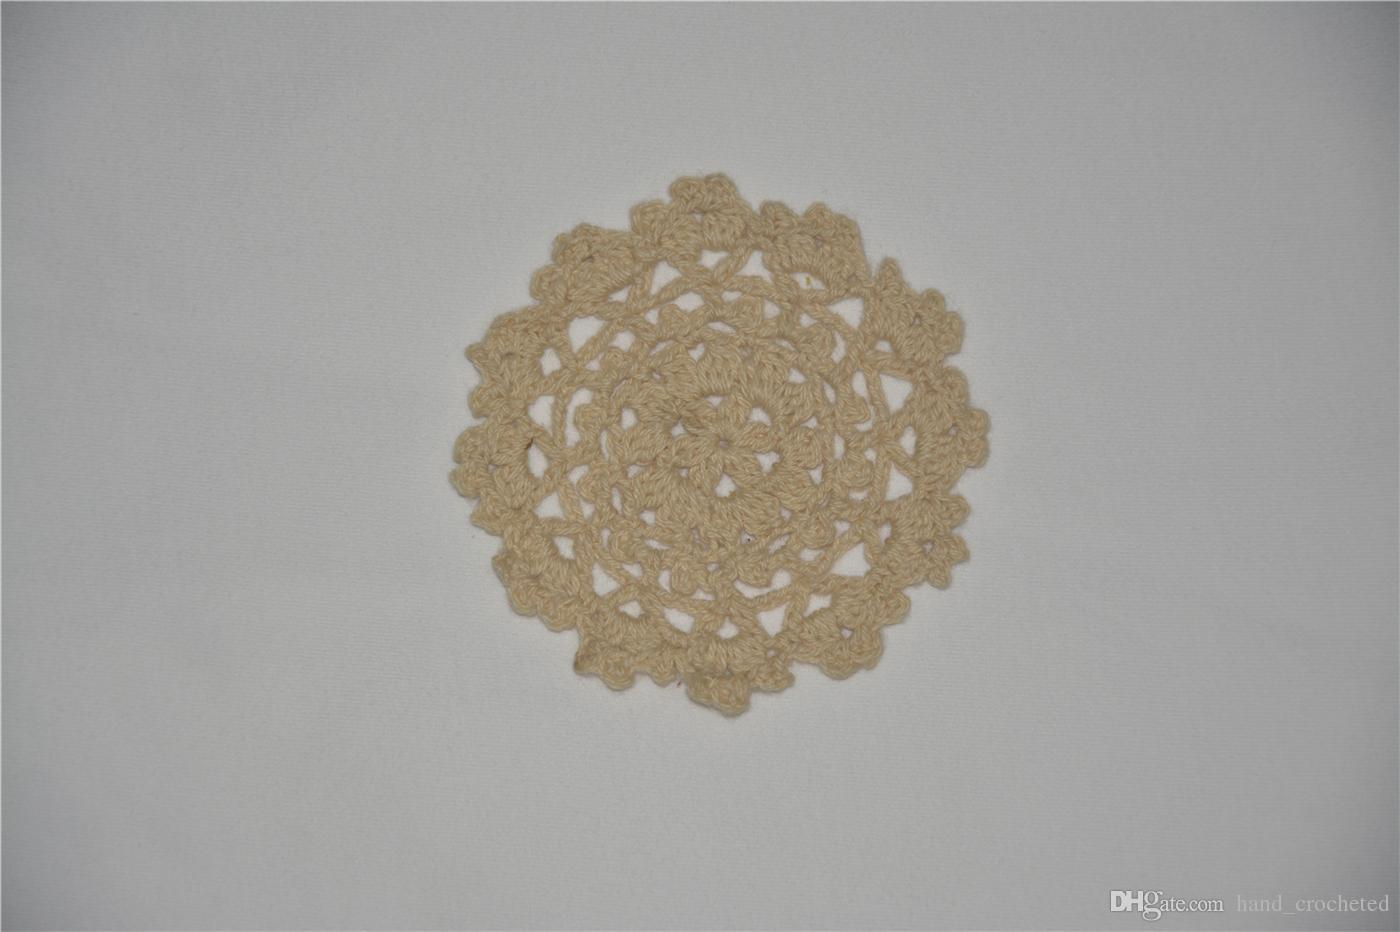 DIY Design Wedding Handmade Crochet Coasters Doily Placemats Crocheted Doilies Size 3.5 inches / Custom Color _DSC0086